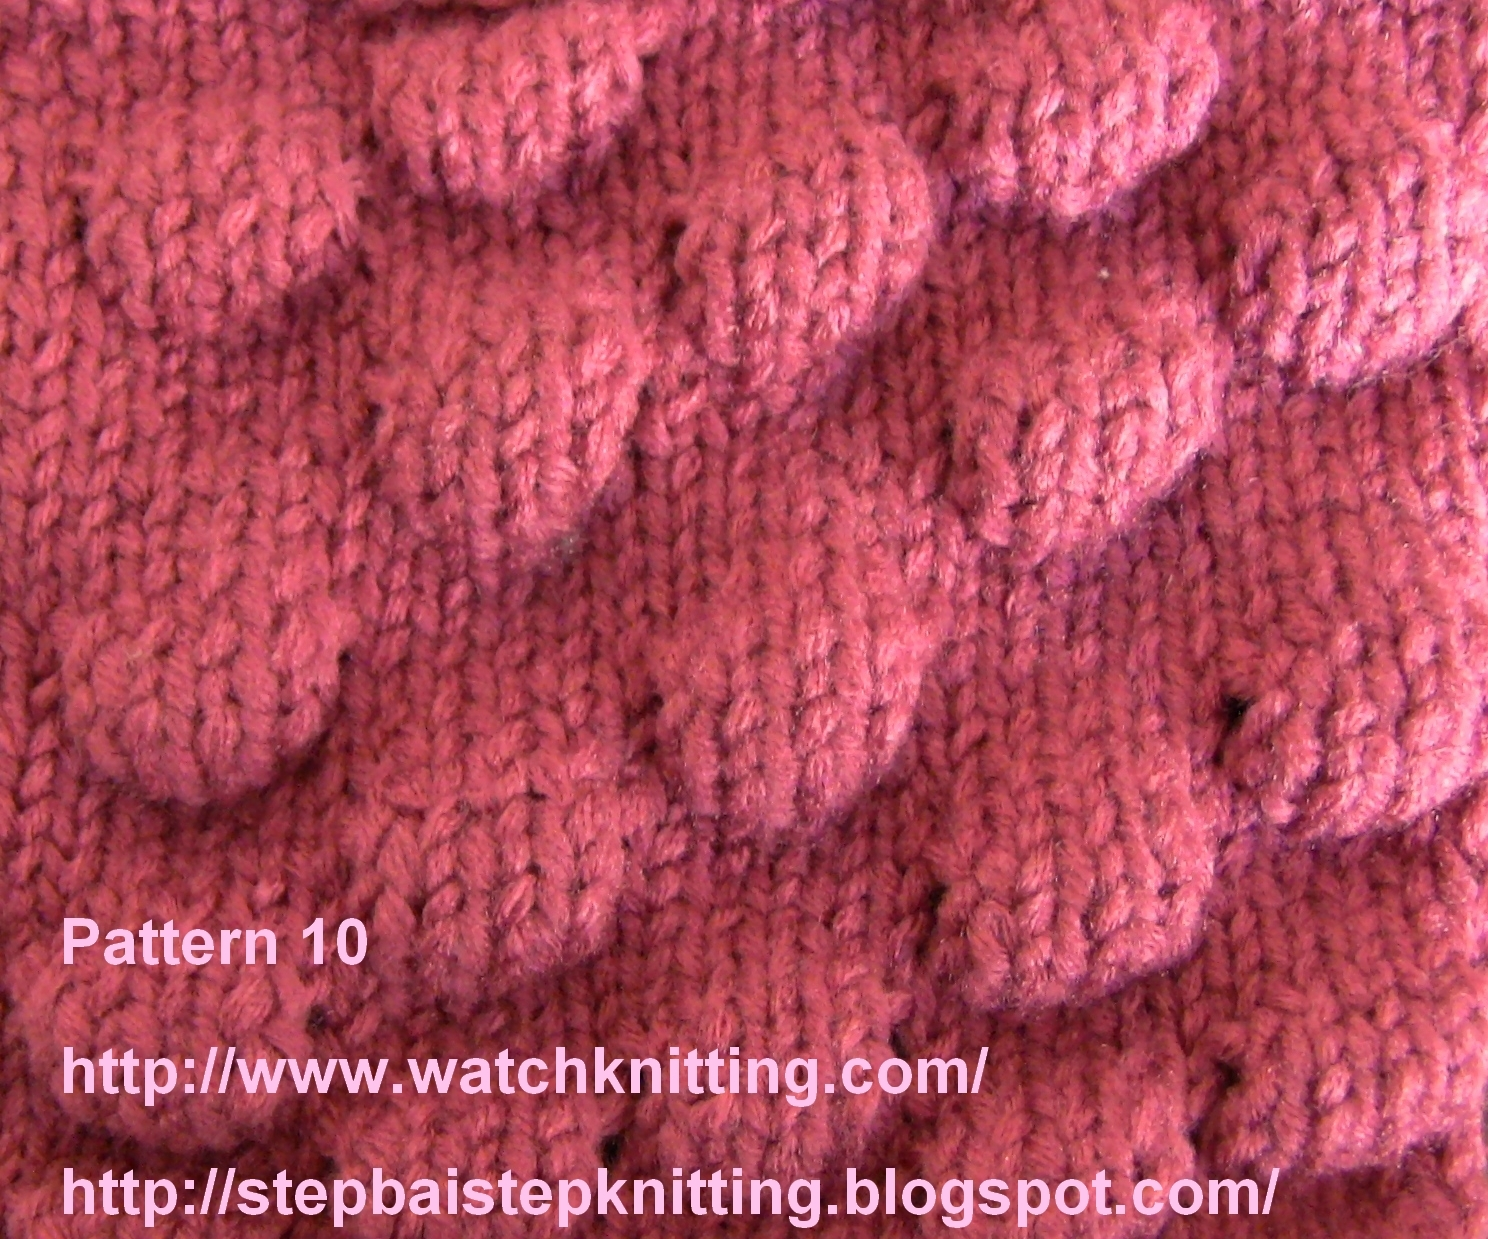 Knitting Tutorials and Free Knitting Patterns FaveCrafts.com